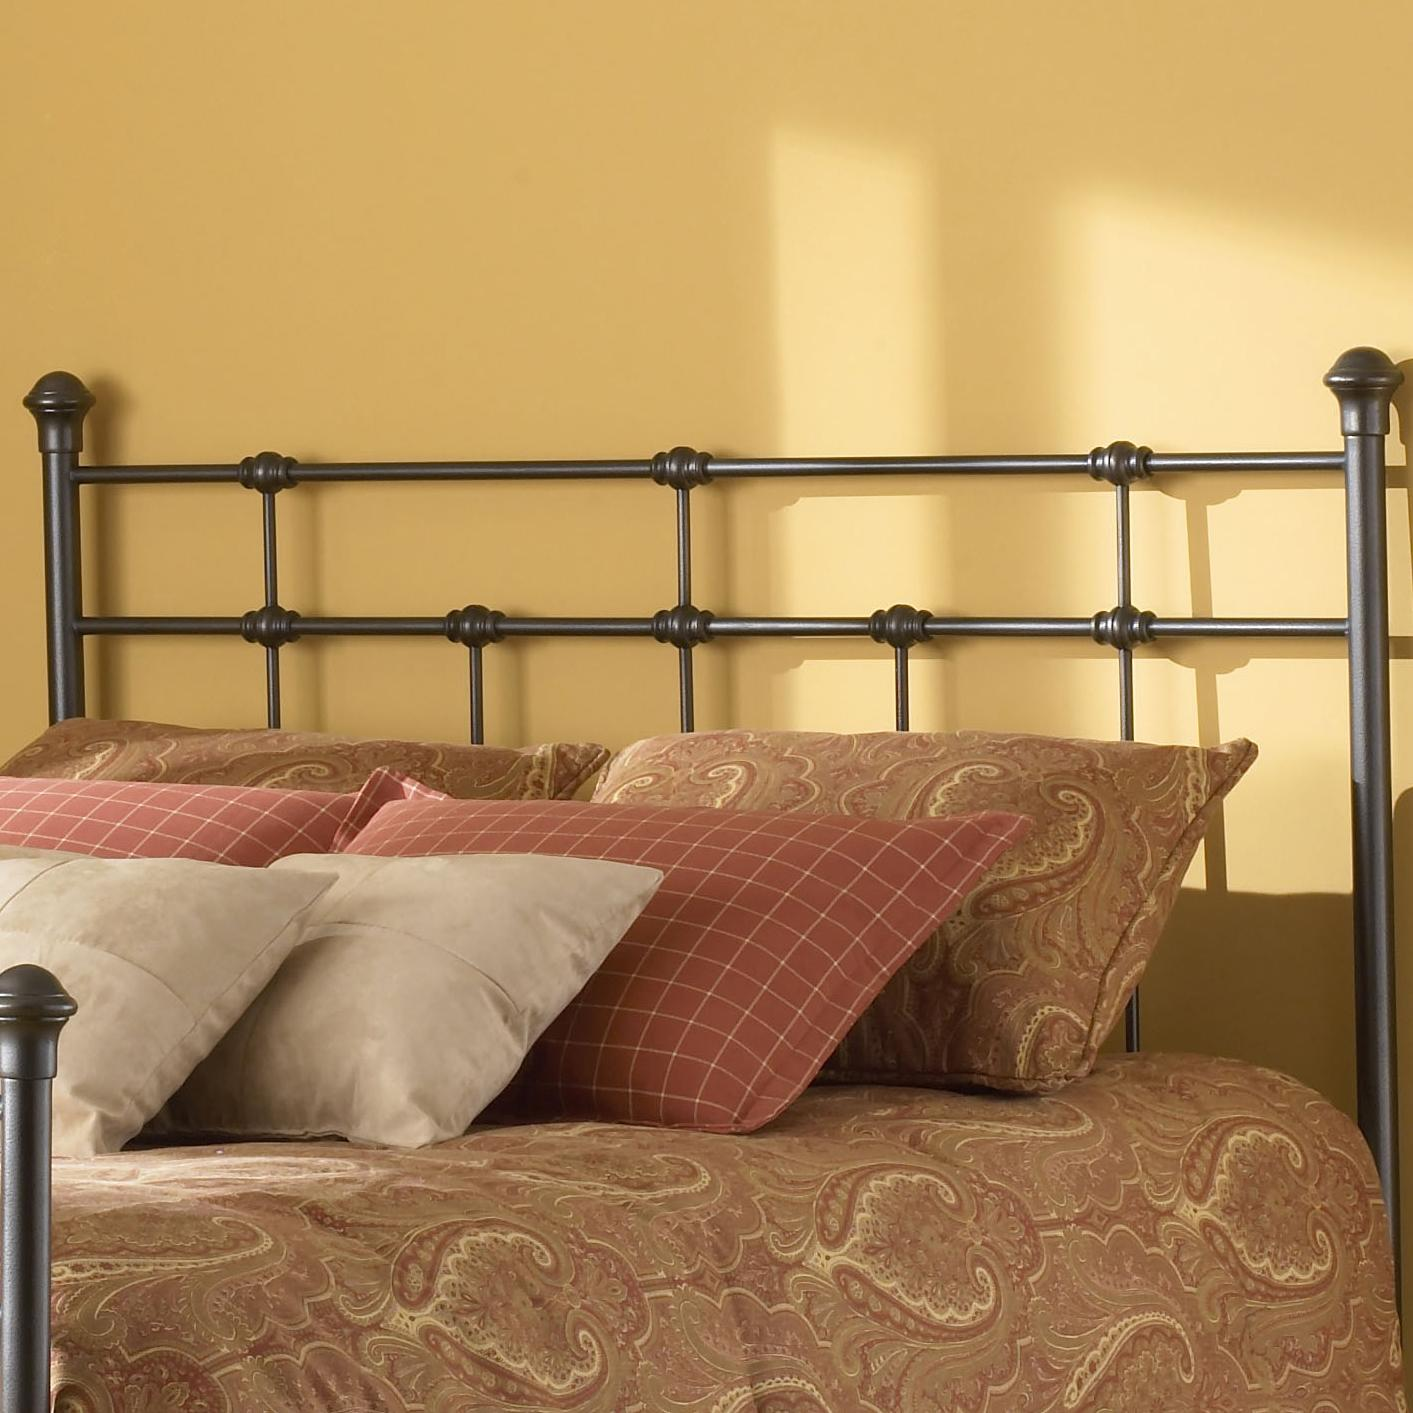 Fashion Bed Group Metal Beds Queen Dexter Headboard